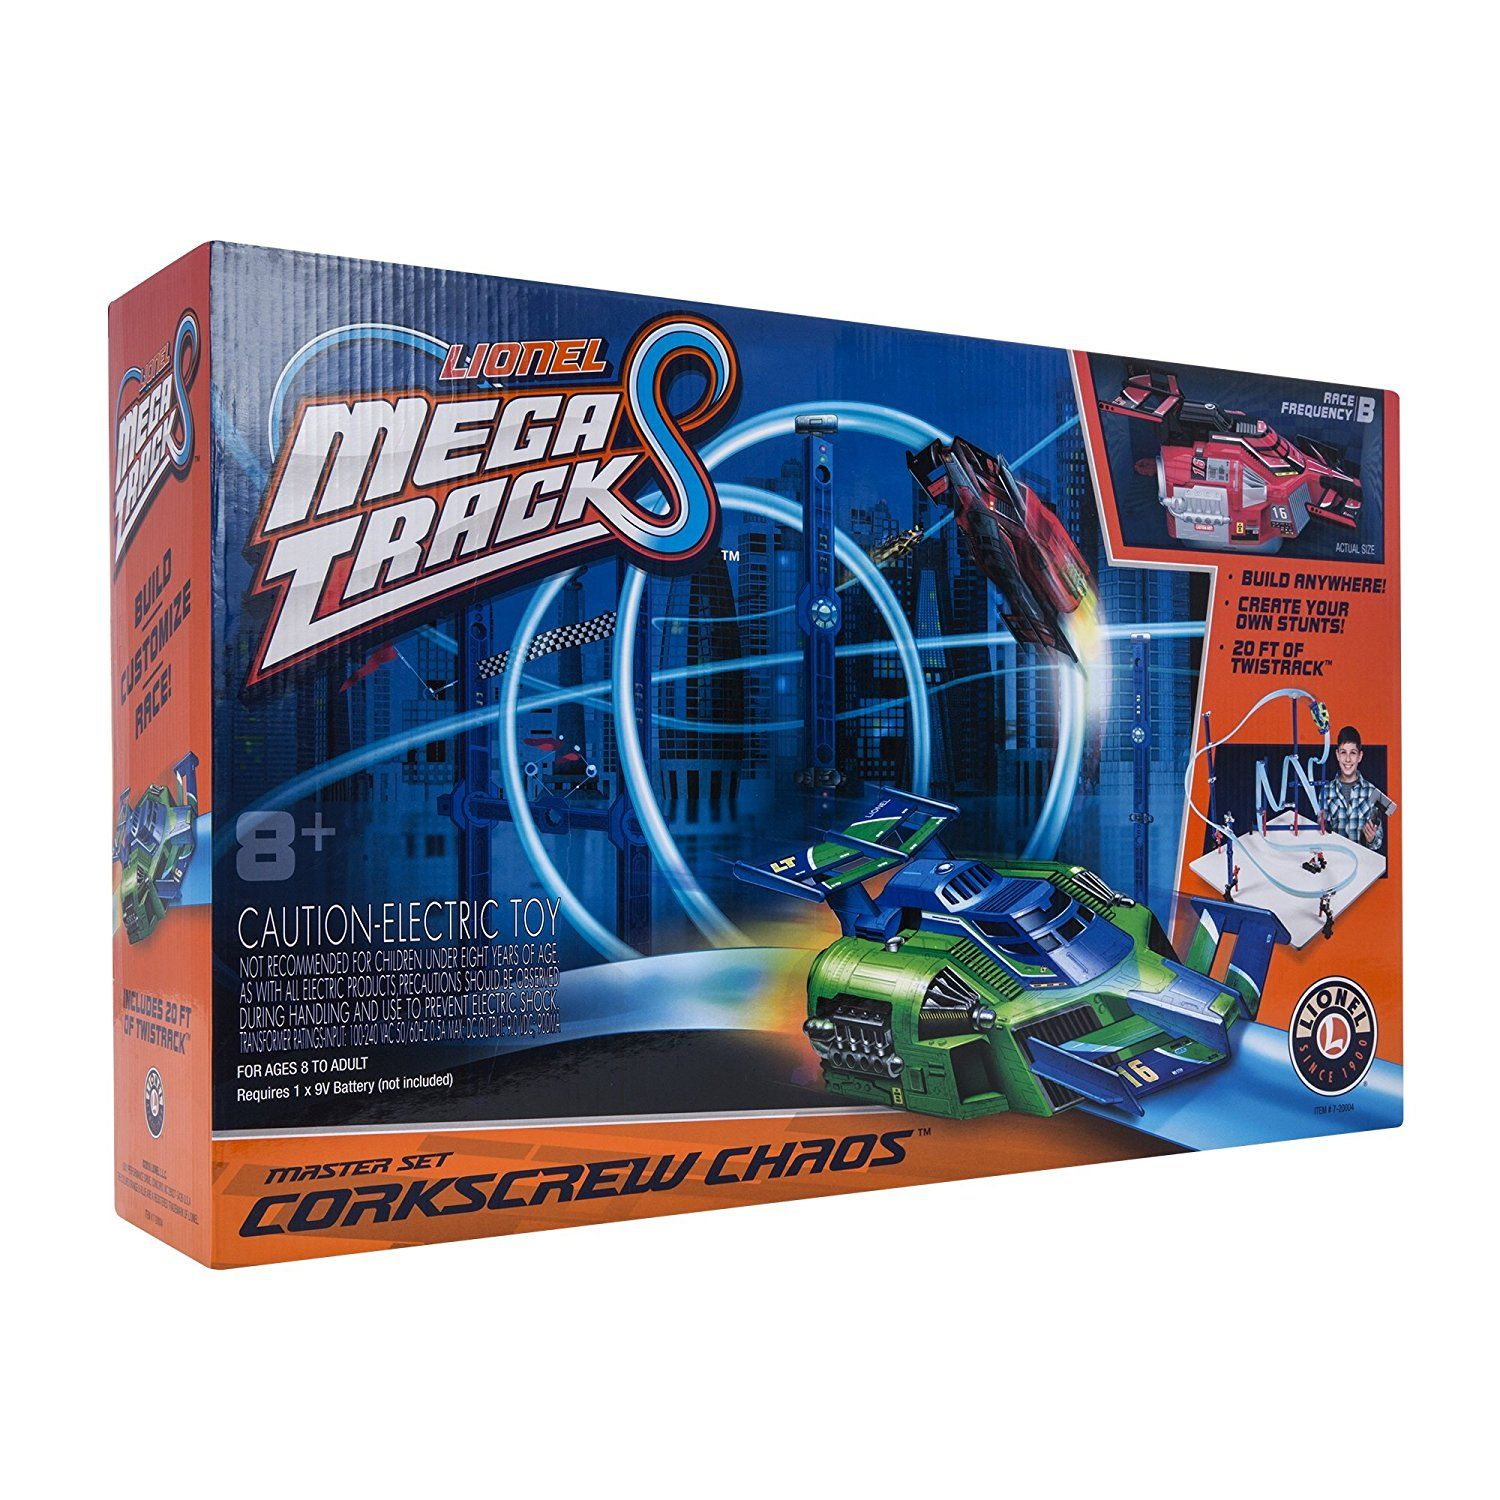 Amazon.com: Lionel Mega Tracks - Corkscrew Chaos Red Engine: Toys & Games